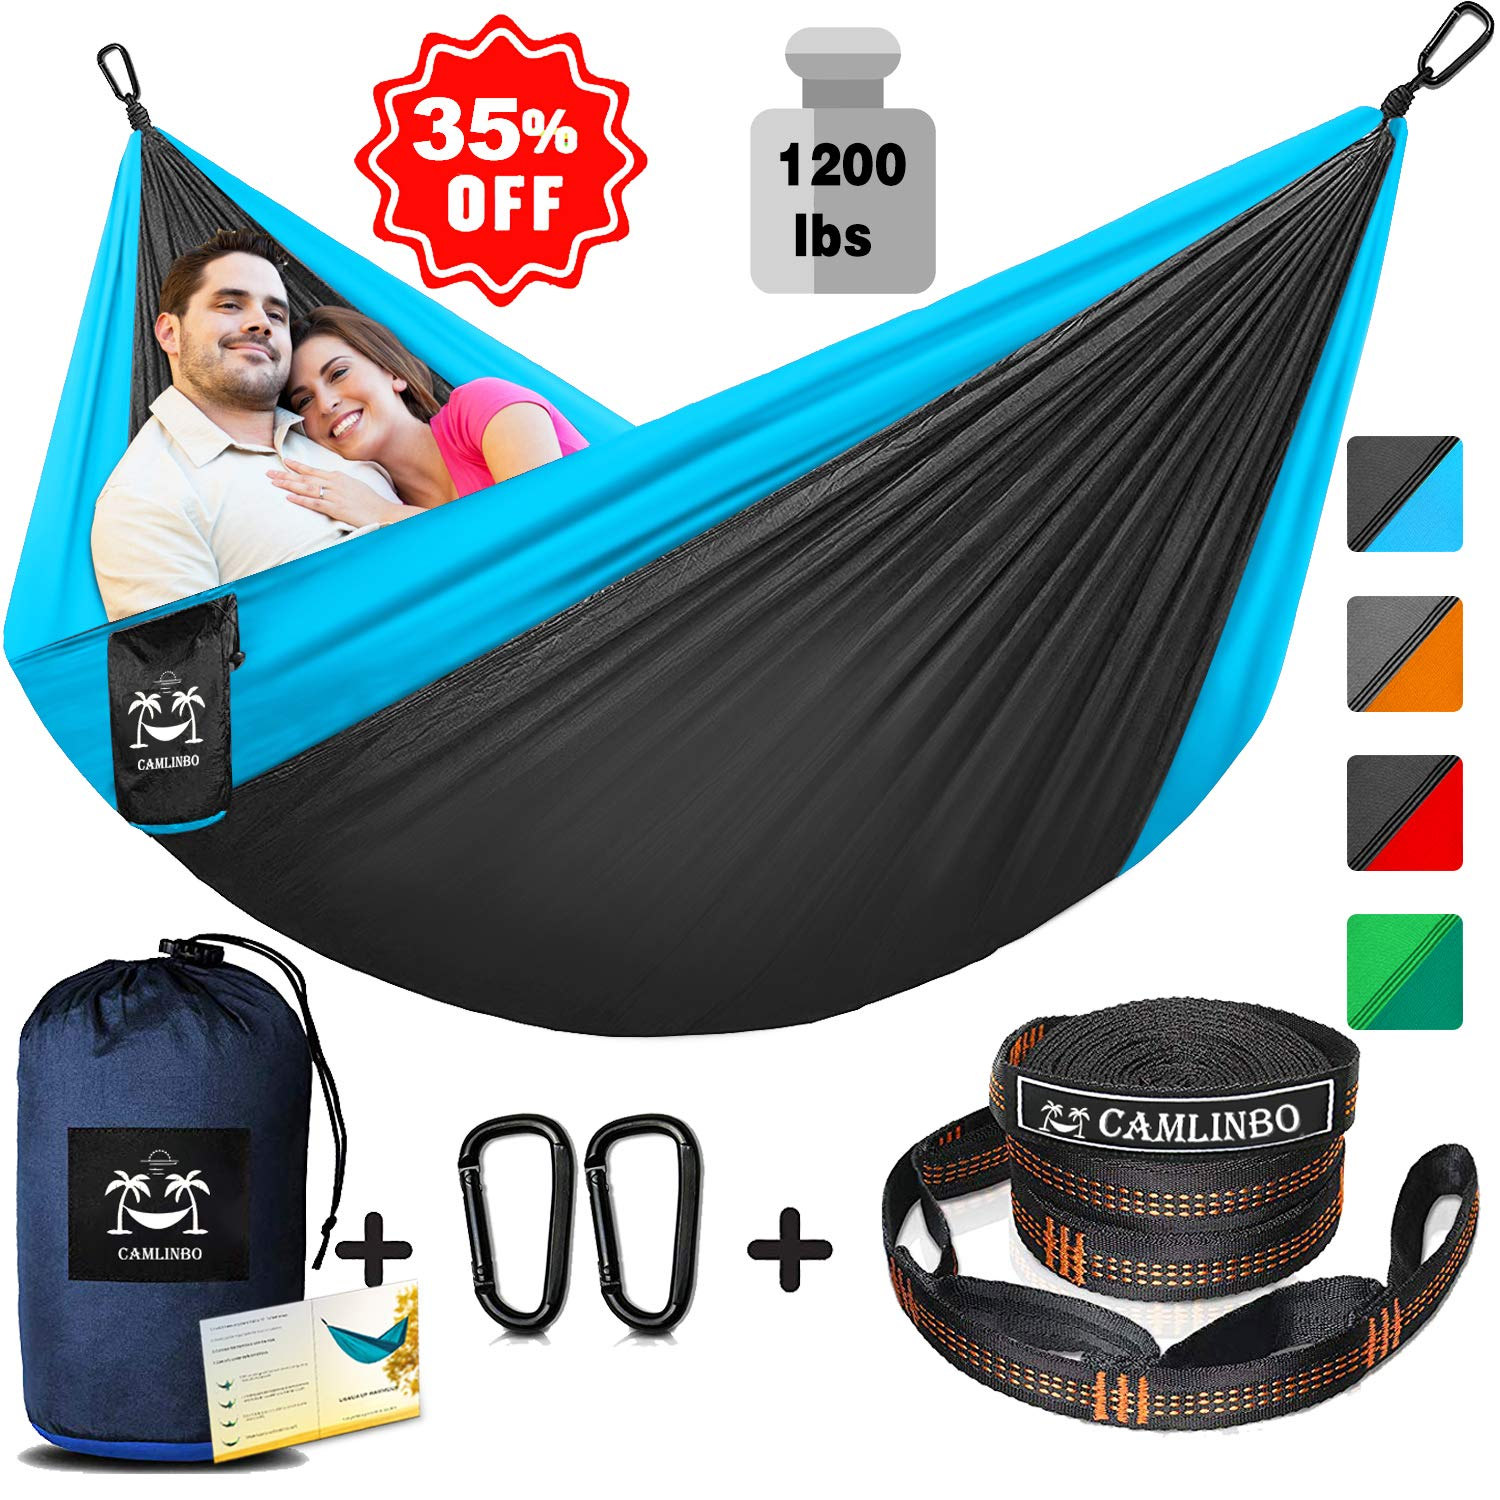 Camping Hammock for 2 Person Double Hammocks with Tree Straps & Steel Carabiners 118'' L x 78'' W Hold up 1200 lbs Backpacking Hammock Outdoor Hiking Portable Lightweight (Blue)